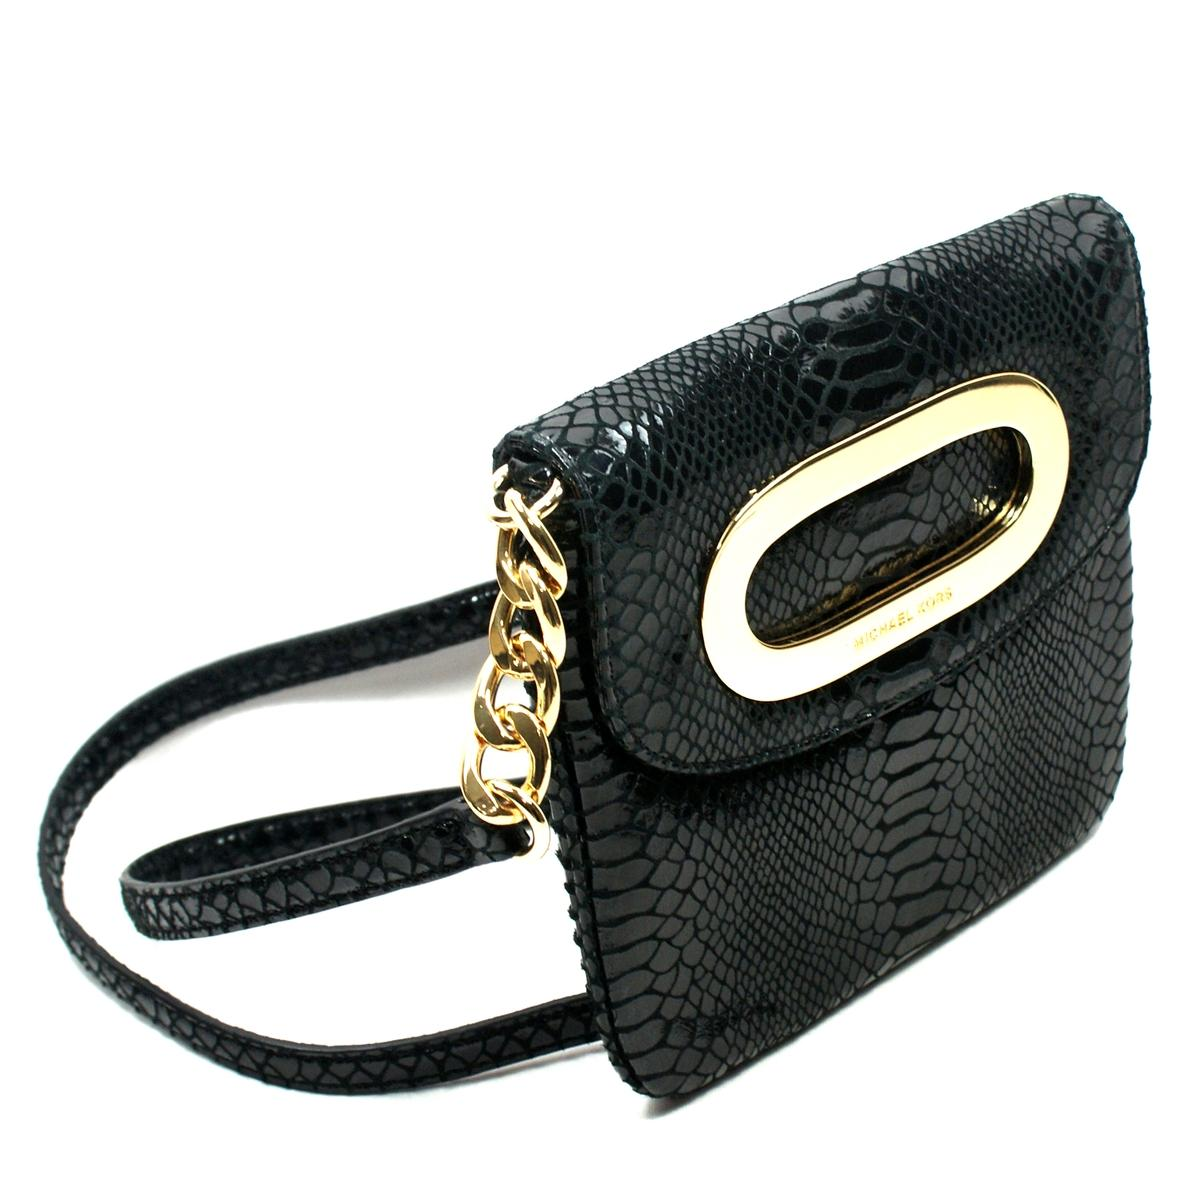 michael kors berkley black genuine leather crossbody bag